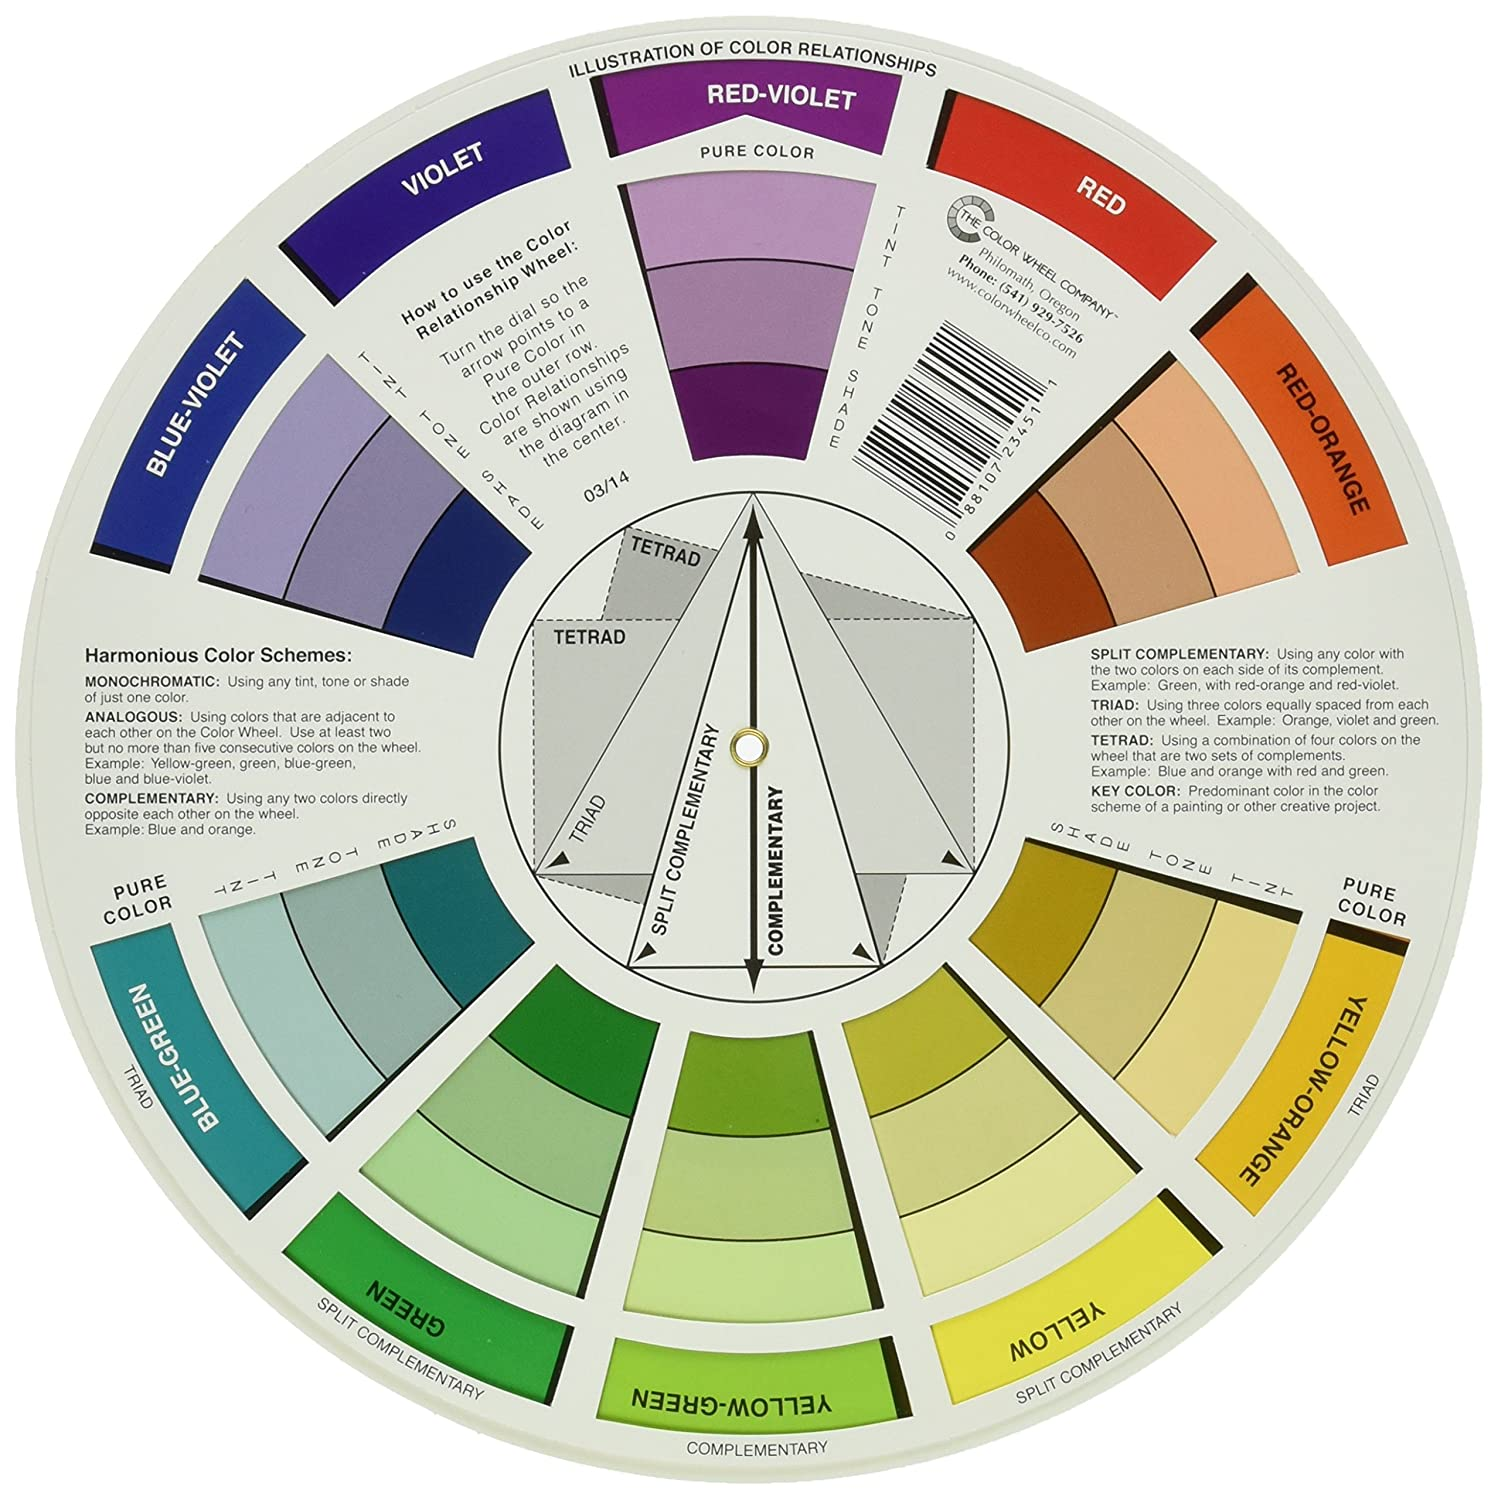 Color wheel complementary colors - Color Wheel Complementary Colors 9